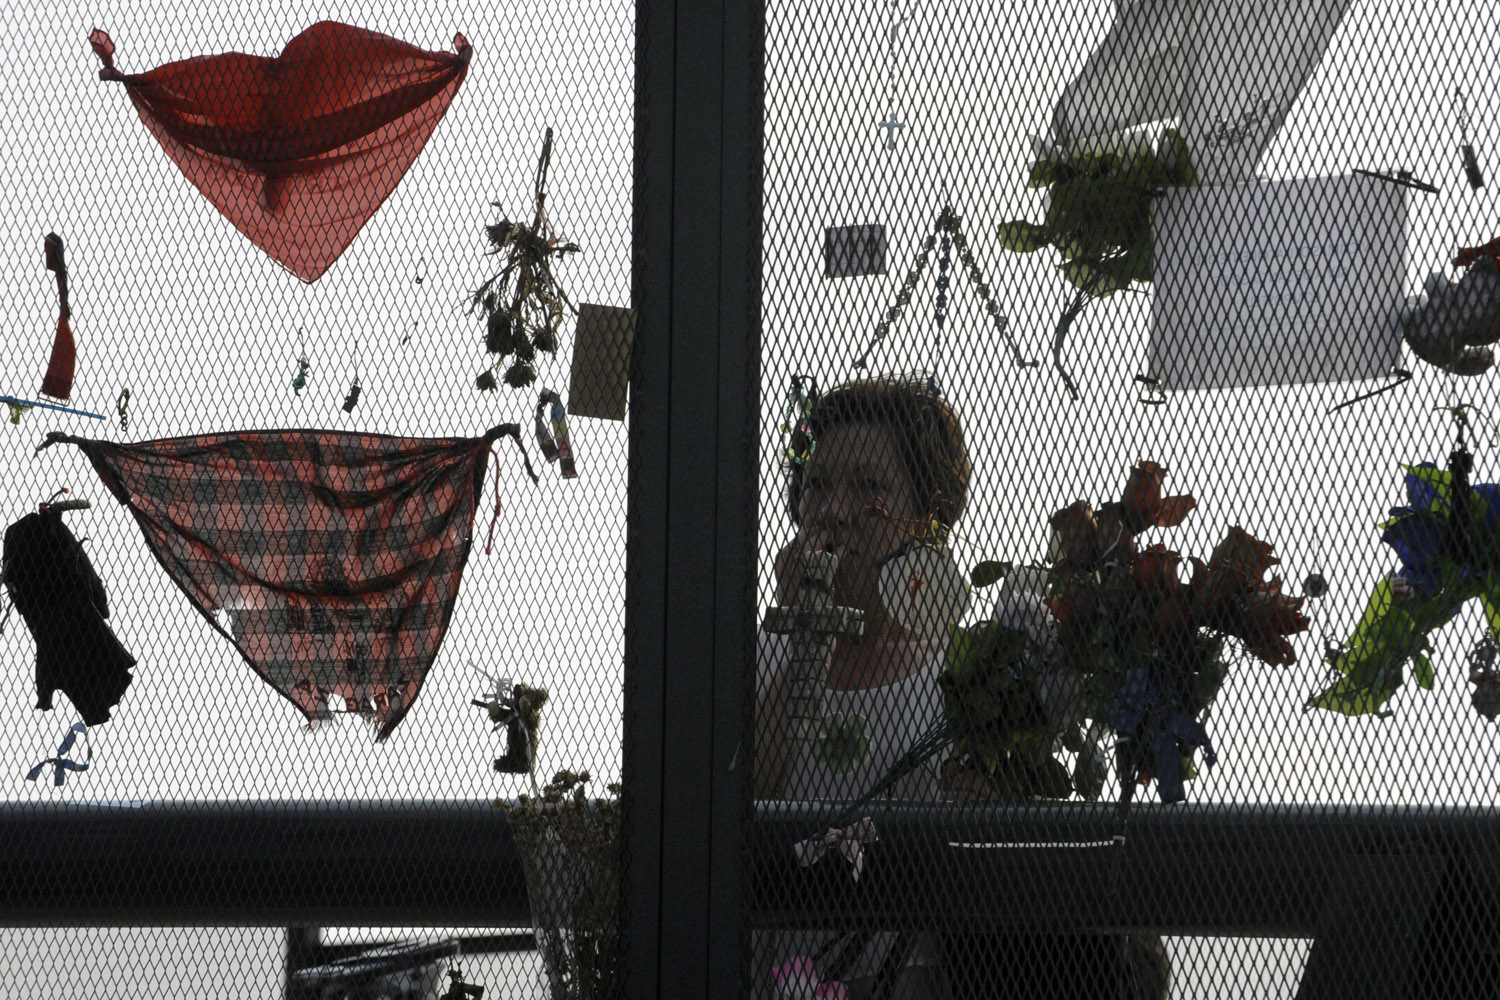 Jul. 24, 2014. A relative of victims of the Santiago de Compostela train crash pays tribute on the first anniversary at the site of the accident in Angrois, near Santiago de Compostela, Spain.